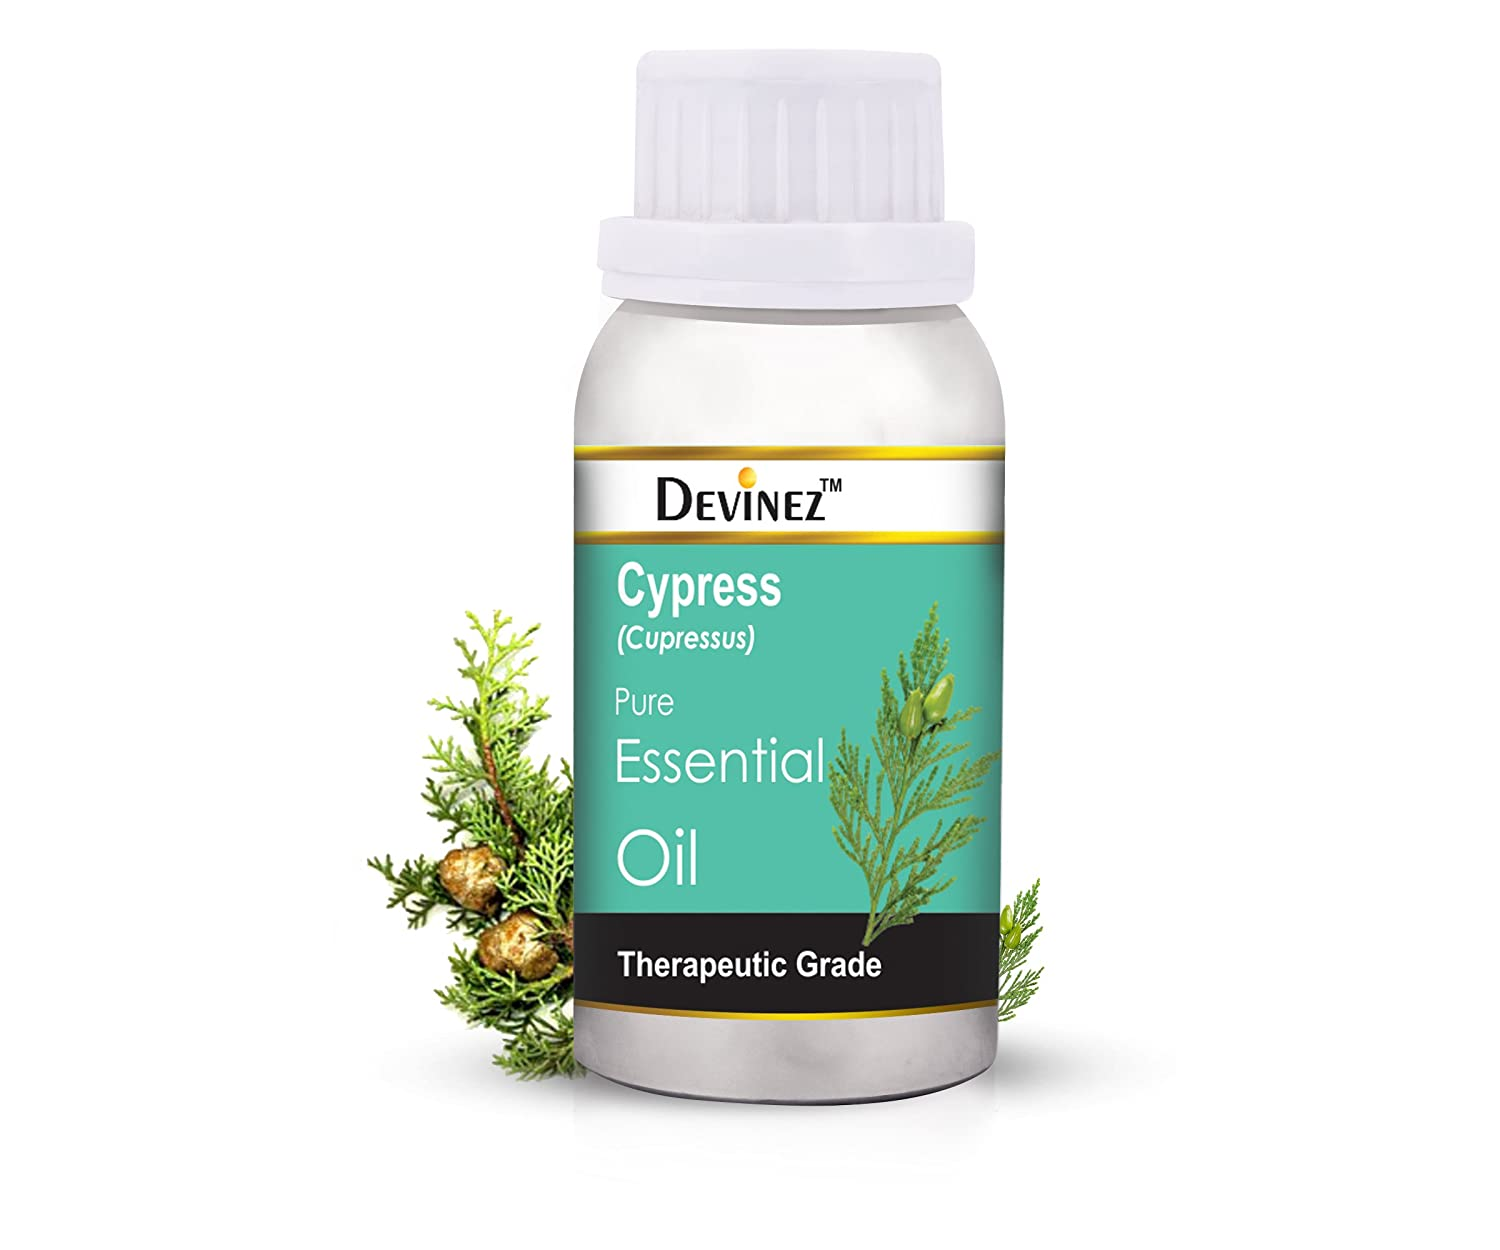 Devinez Cypress Essential Oil, 100% Pure, Natural & Undiluted, 1000ml in Anodized Aluminum Bottle